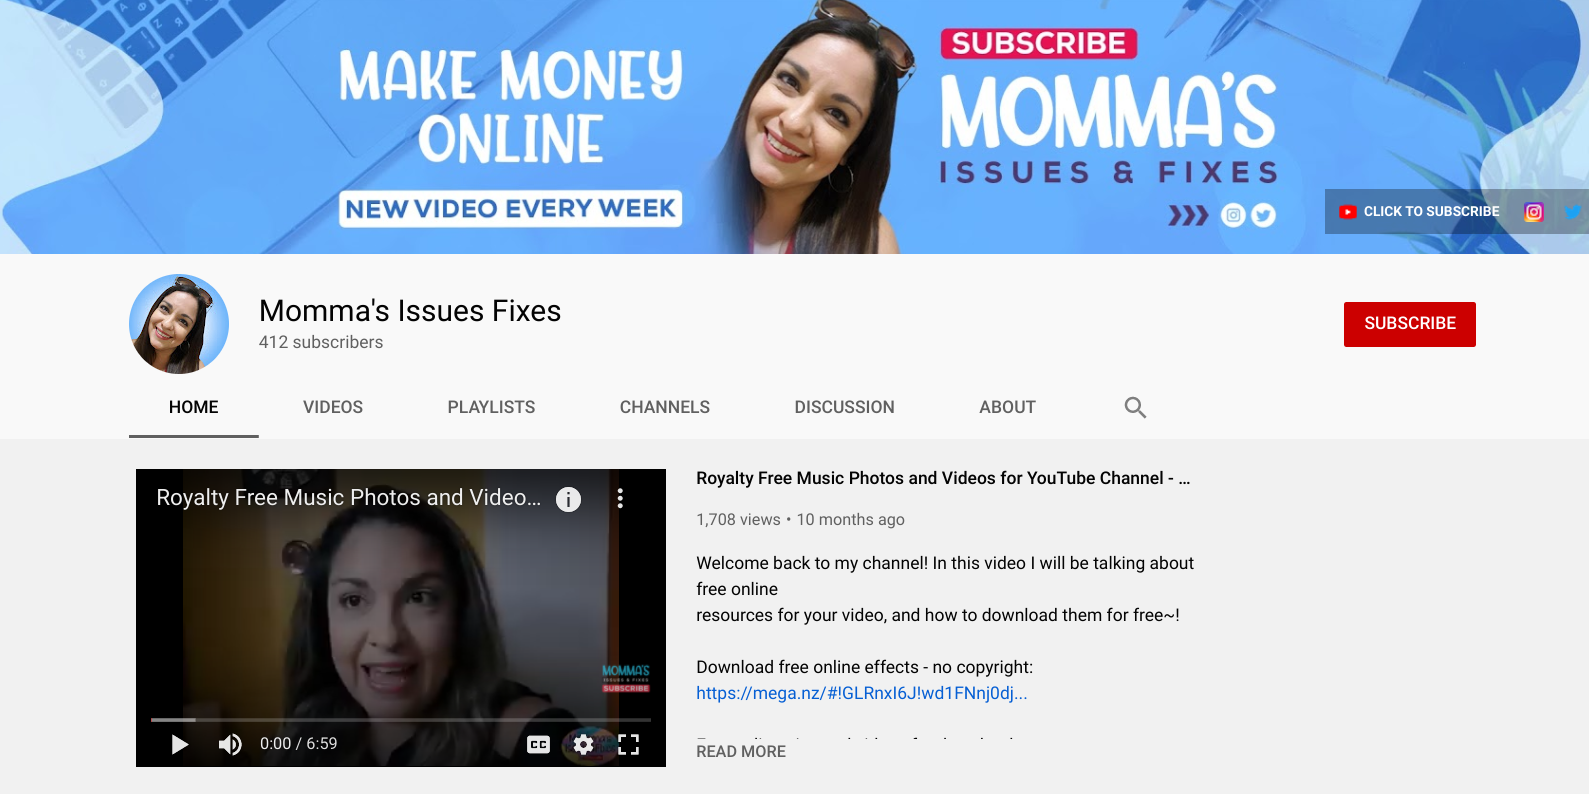 Momma's Issues & Fixes Youtube Channel